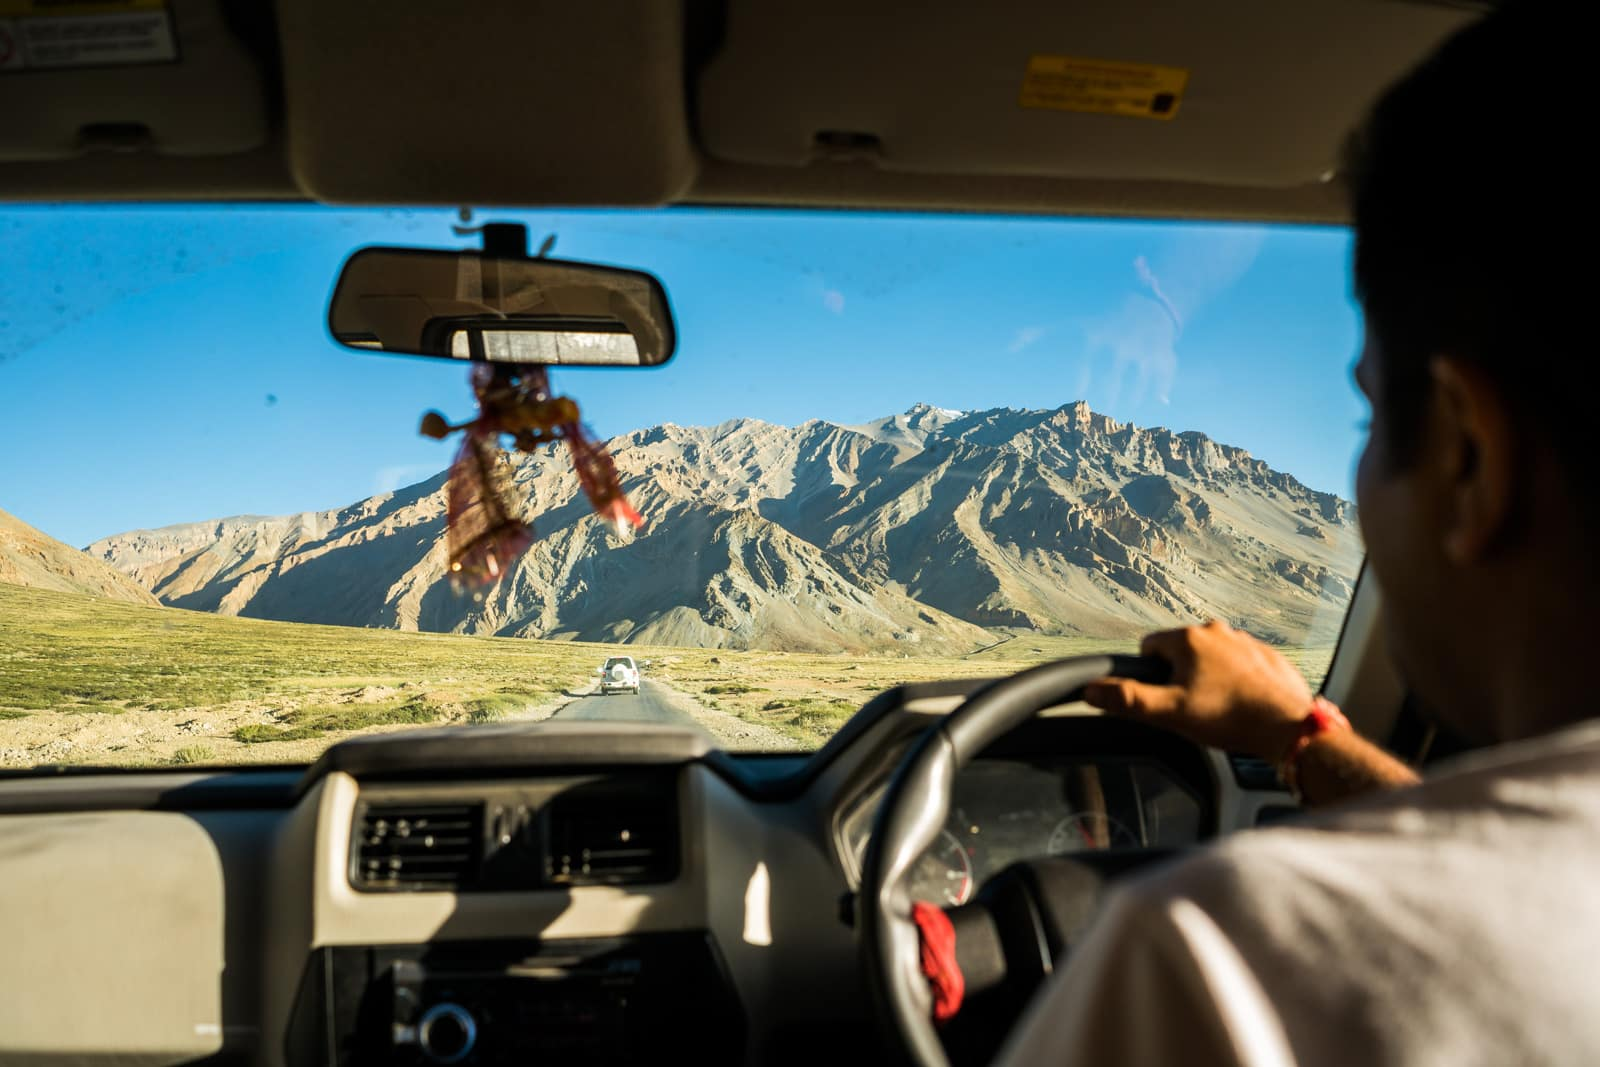 Hitchhiking the Leh - Manali highway - Driving in a passenger car through Ladakh - Lost With Purpose travel blog